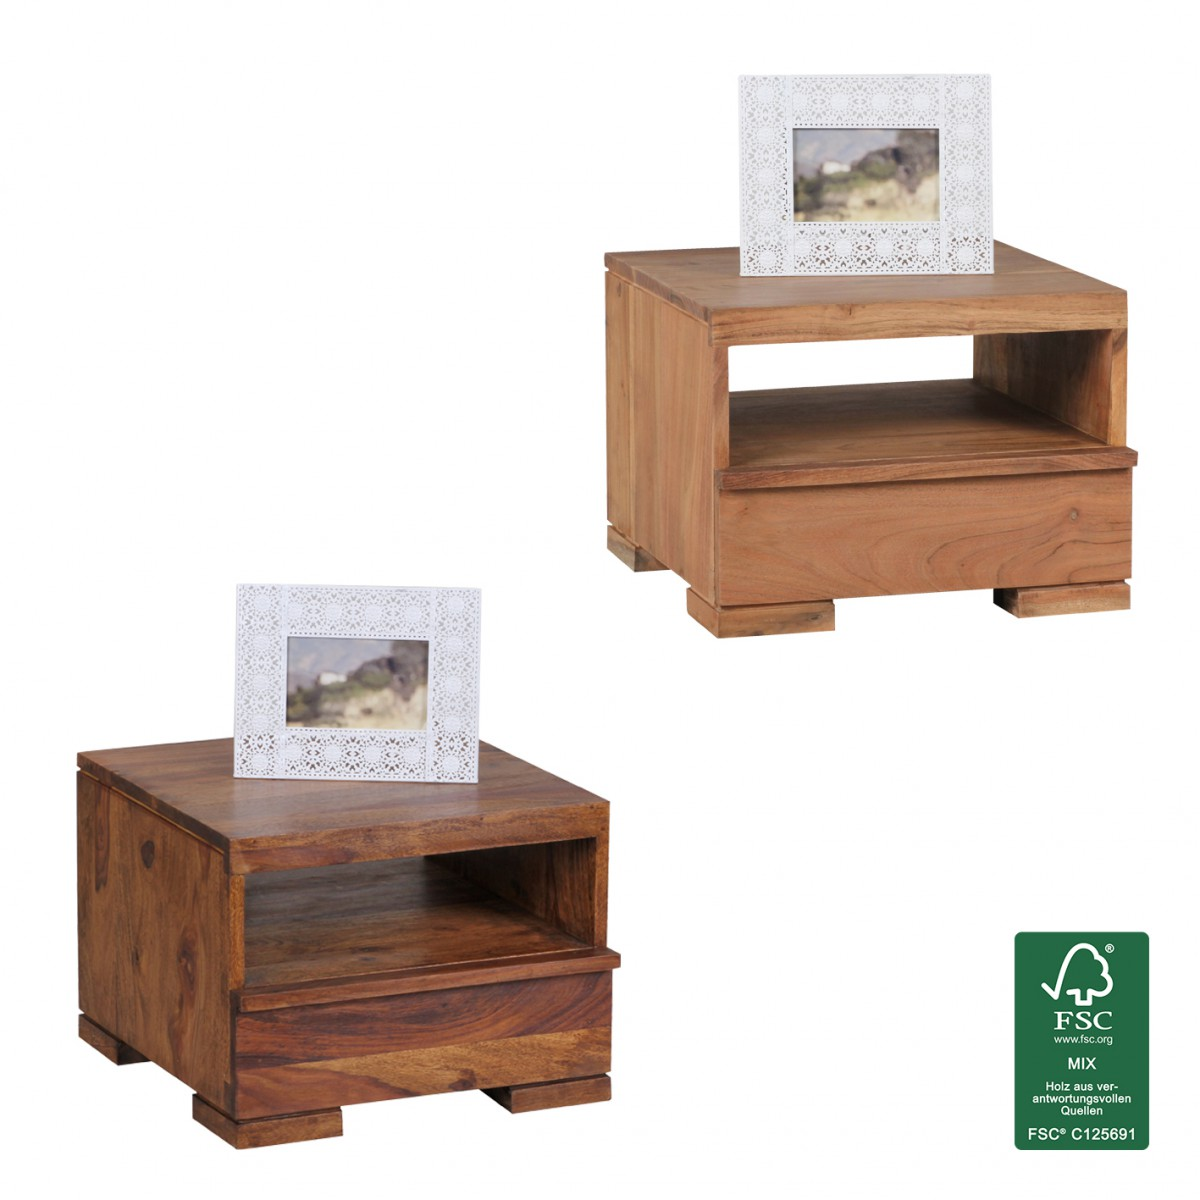 Finebuy table de chevet en bois massif table de chevet 30 cm tiroir de ferme - Table de chevet 30 cm ...